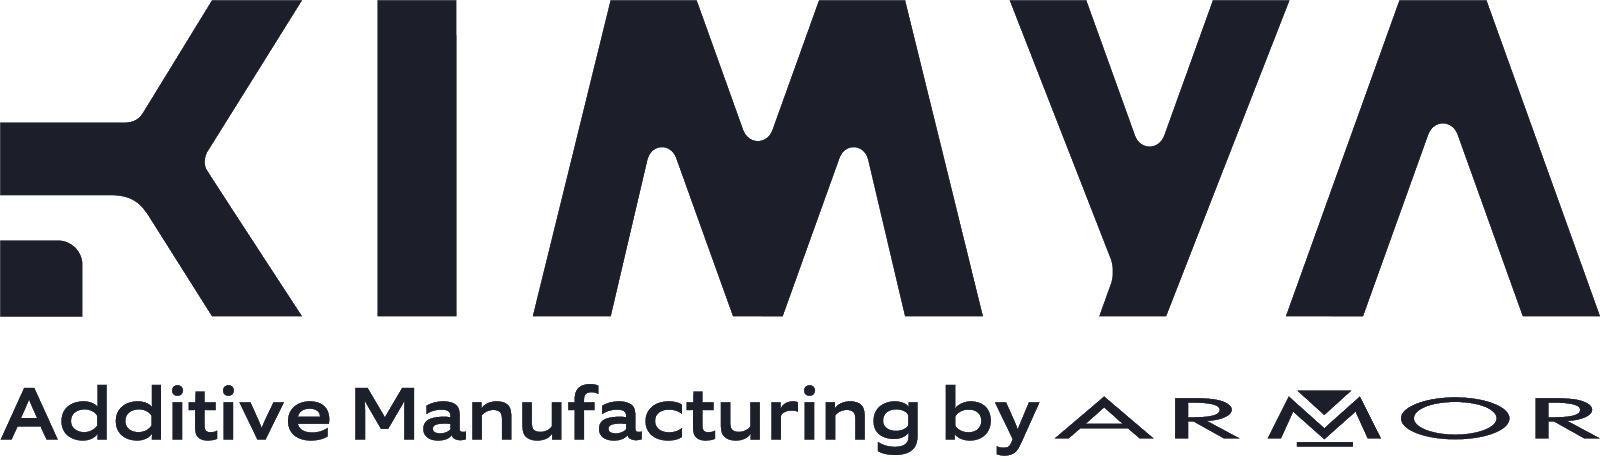 Logo_Kimya_Additive Manufacturing by ARMOR